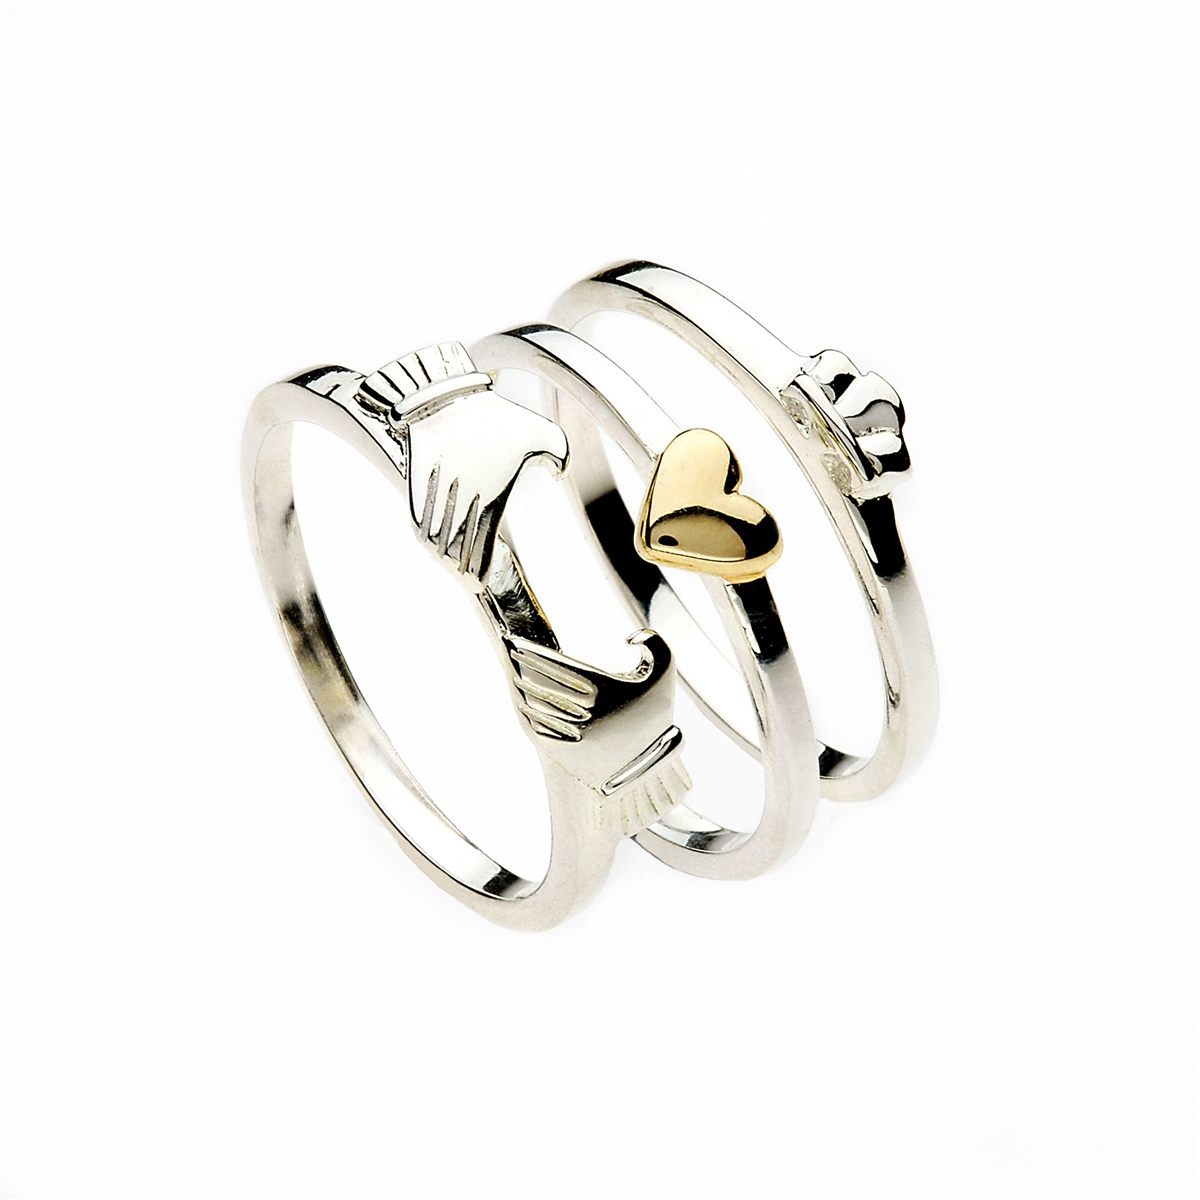 ring prd product op sterling wid hei claddagh sharpen bands jsp silver